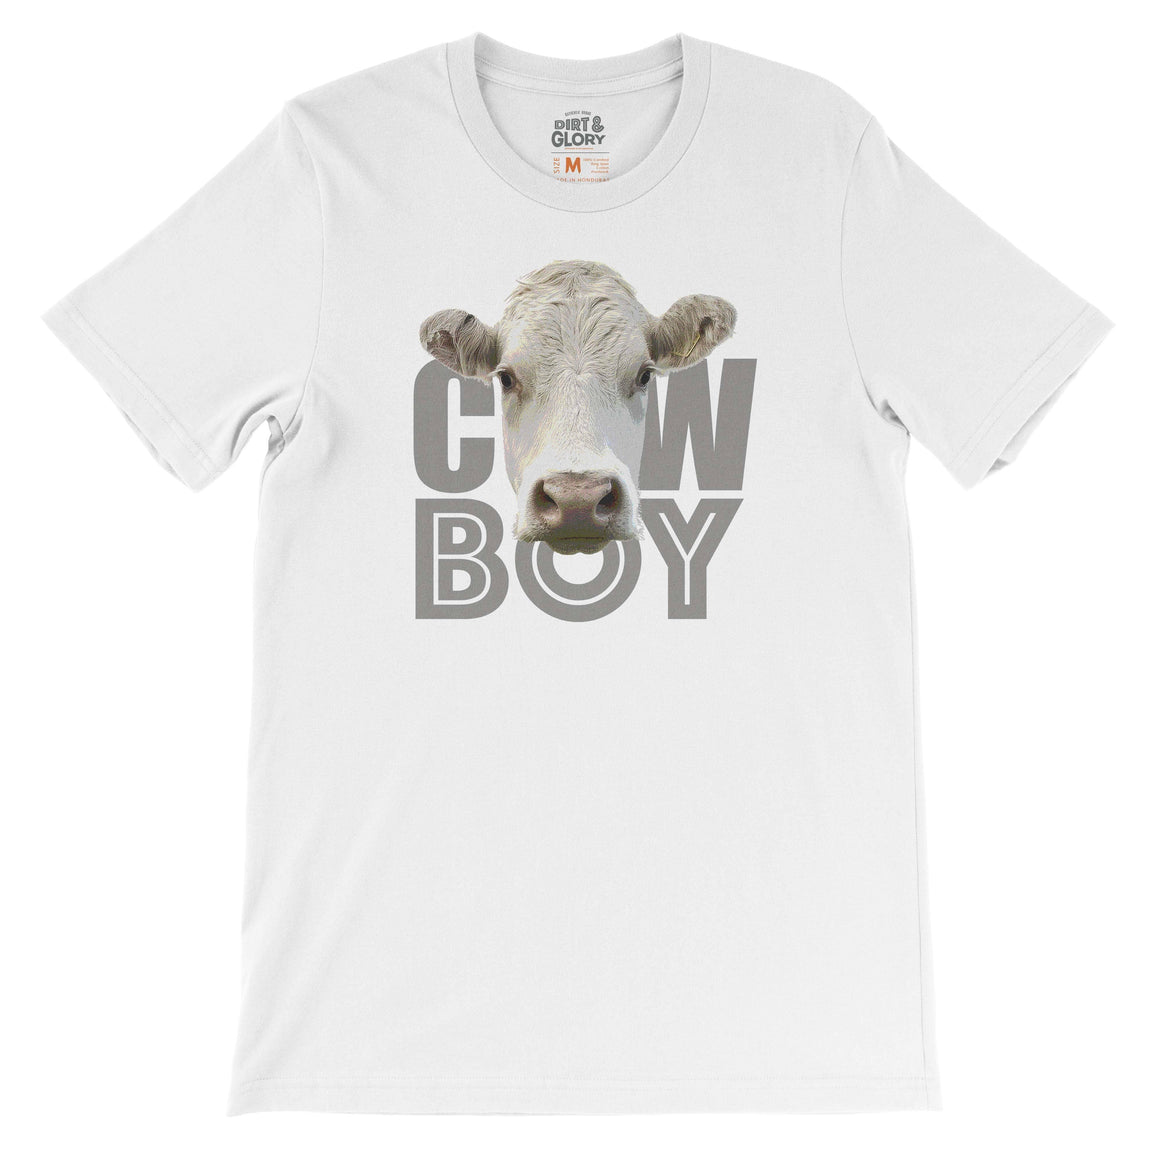 Cowboy - Men's Tee T-shirt by DIRT & GLORY